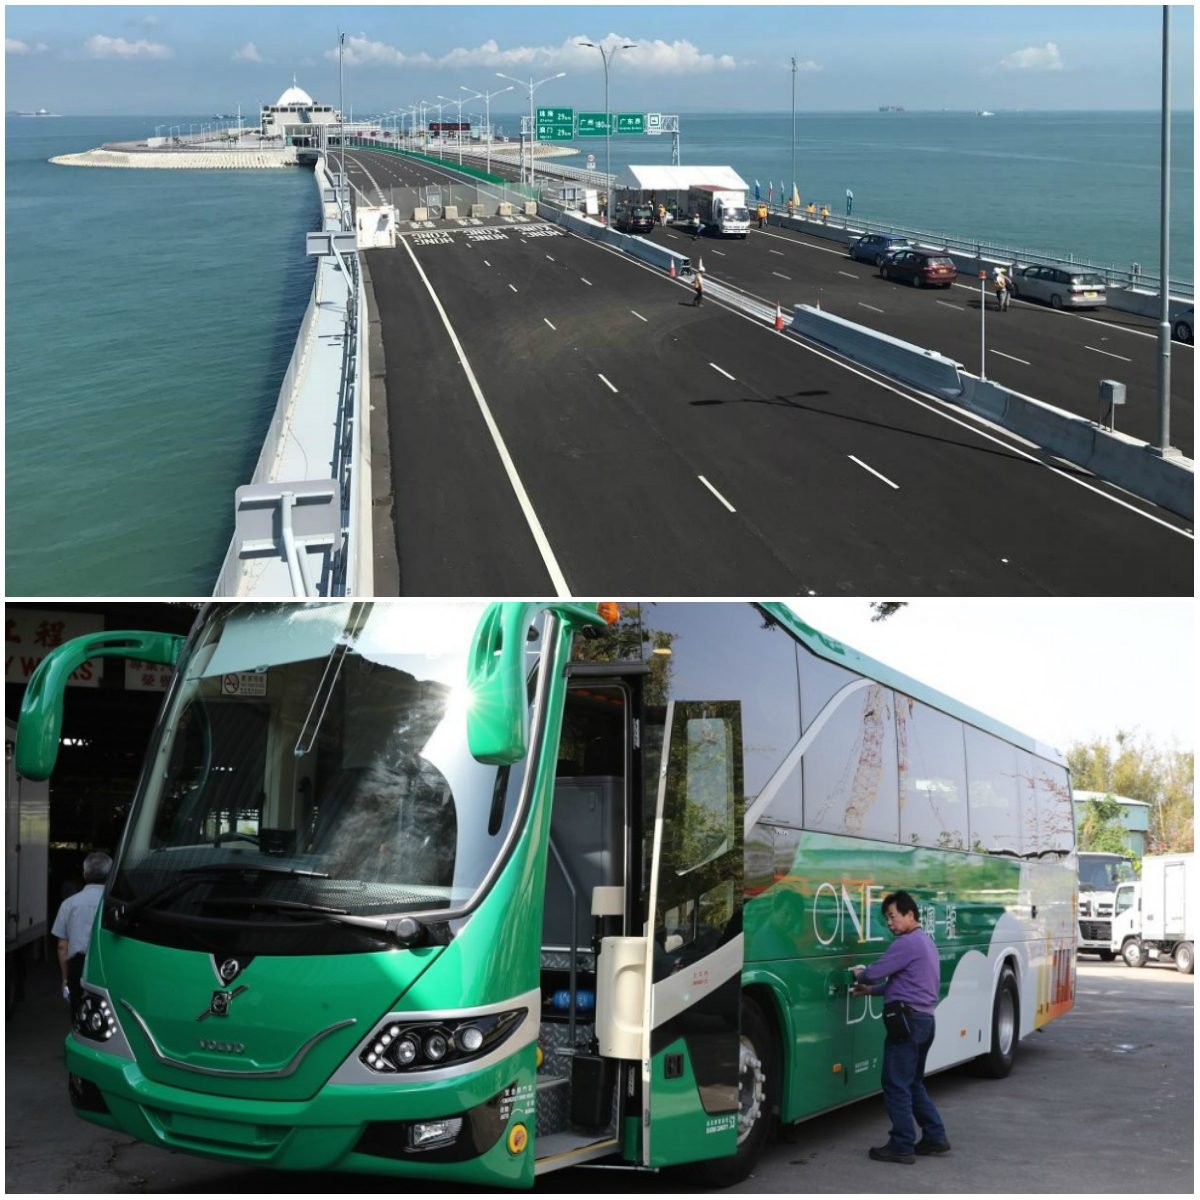 Macau casino bus Hong Kong bridge